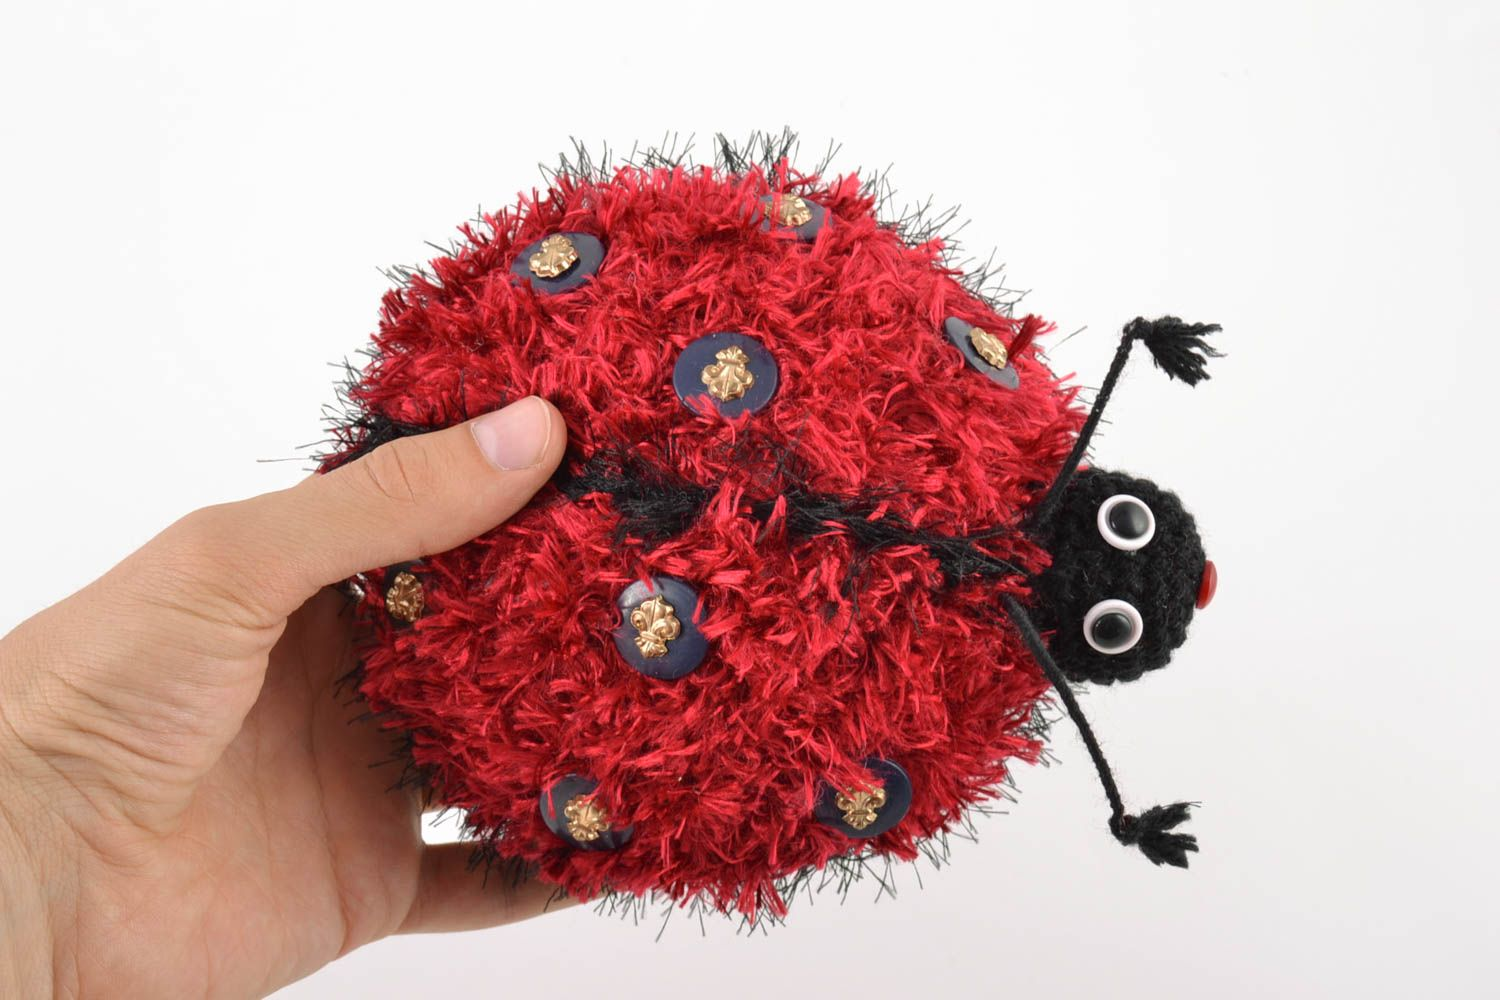 Handmade soft crochet wool toy for children beautiful Ladybug amigurumi photo 2